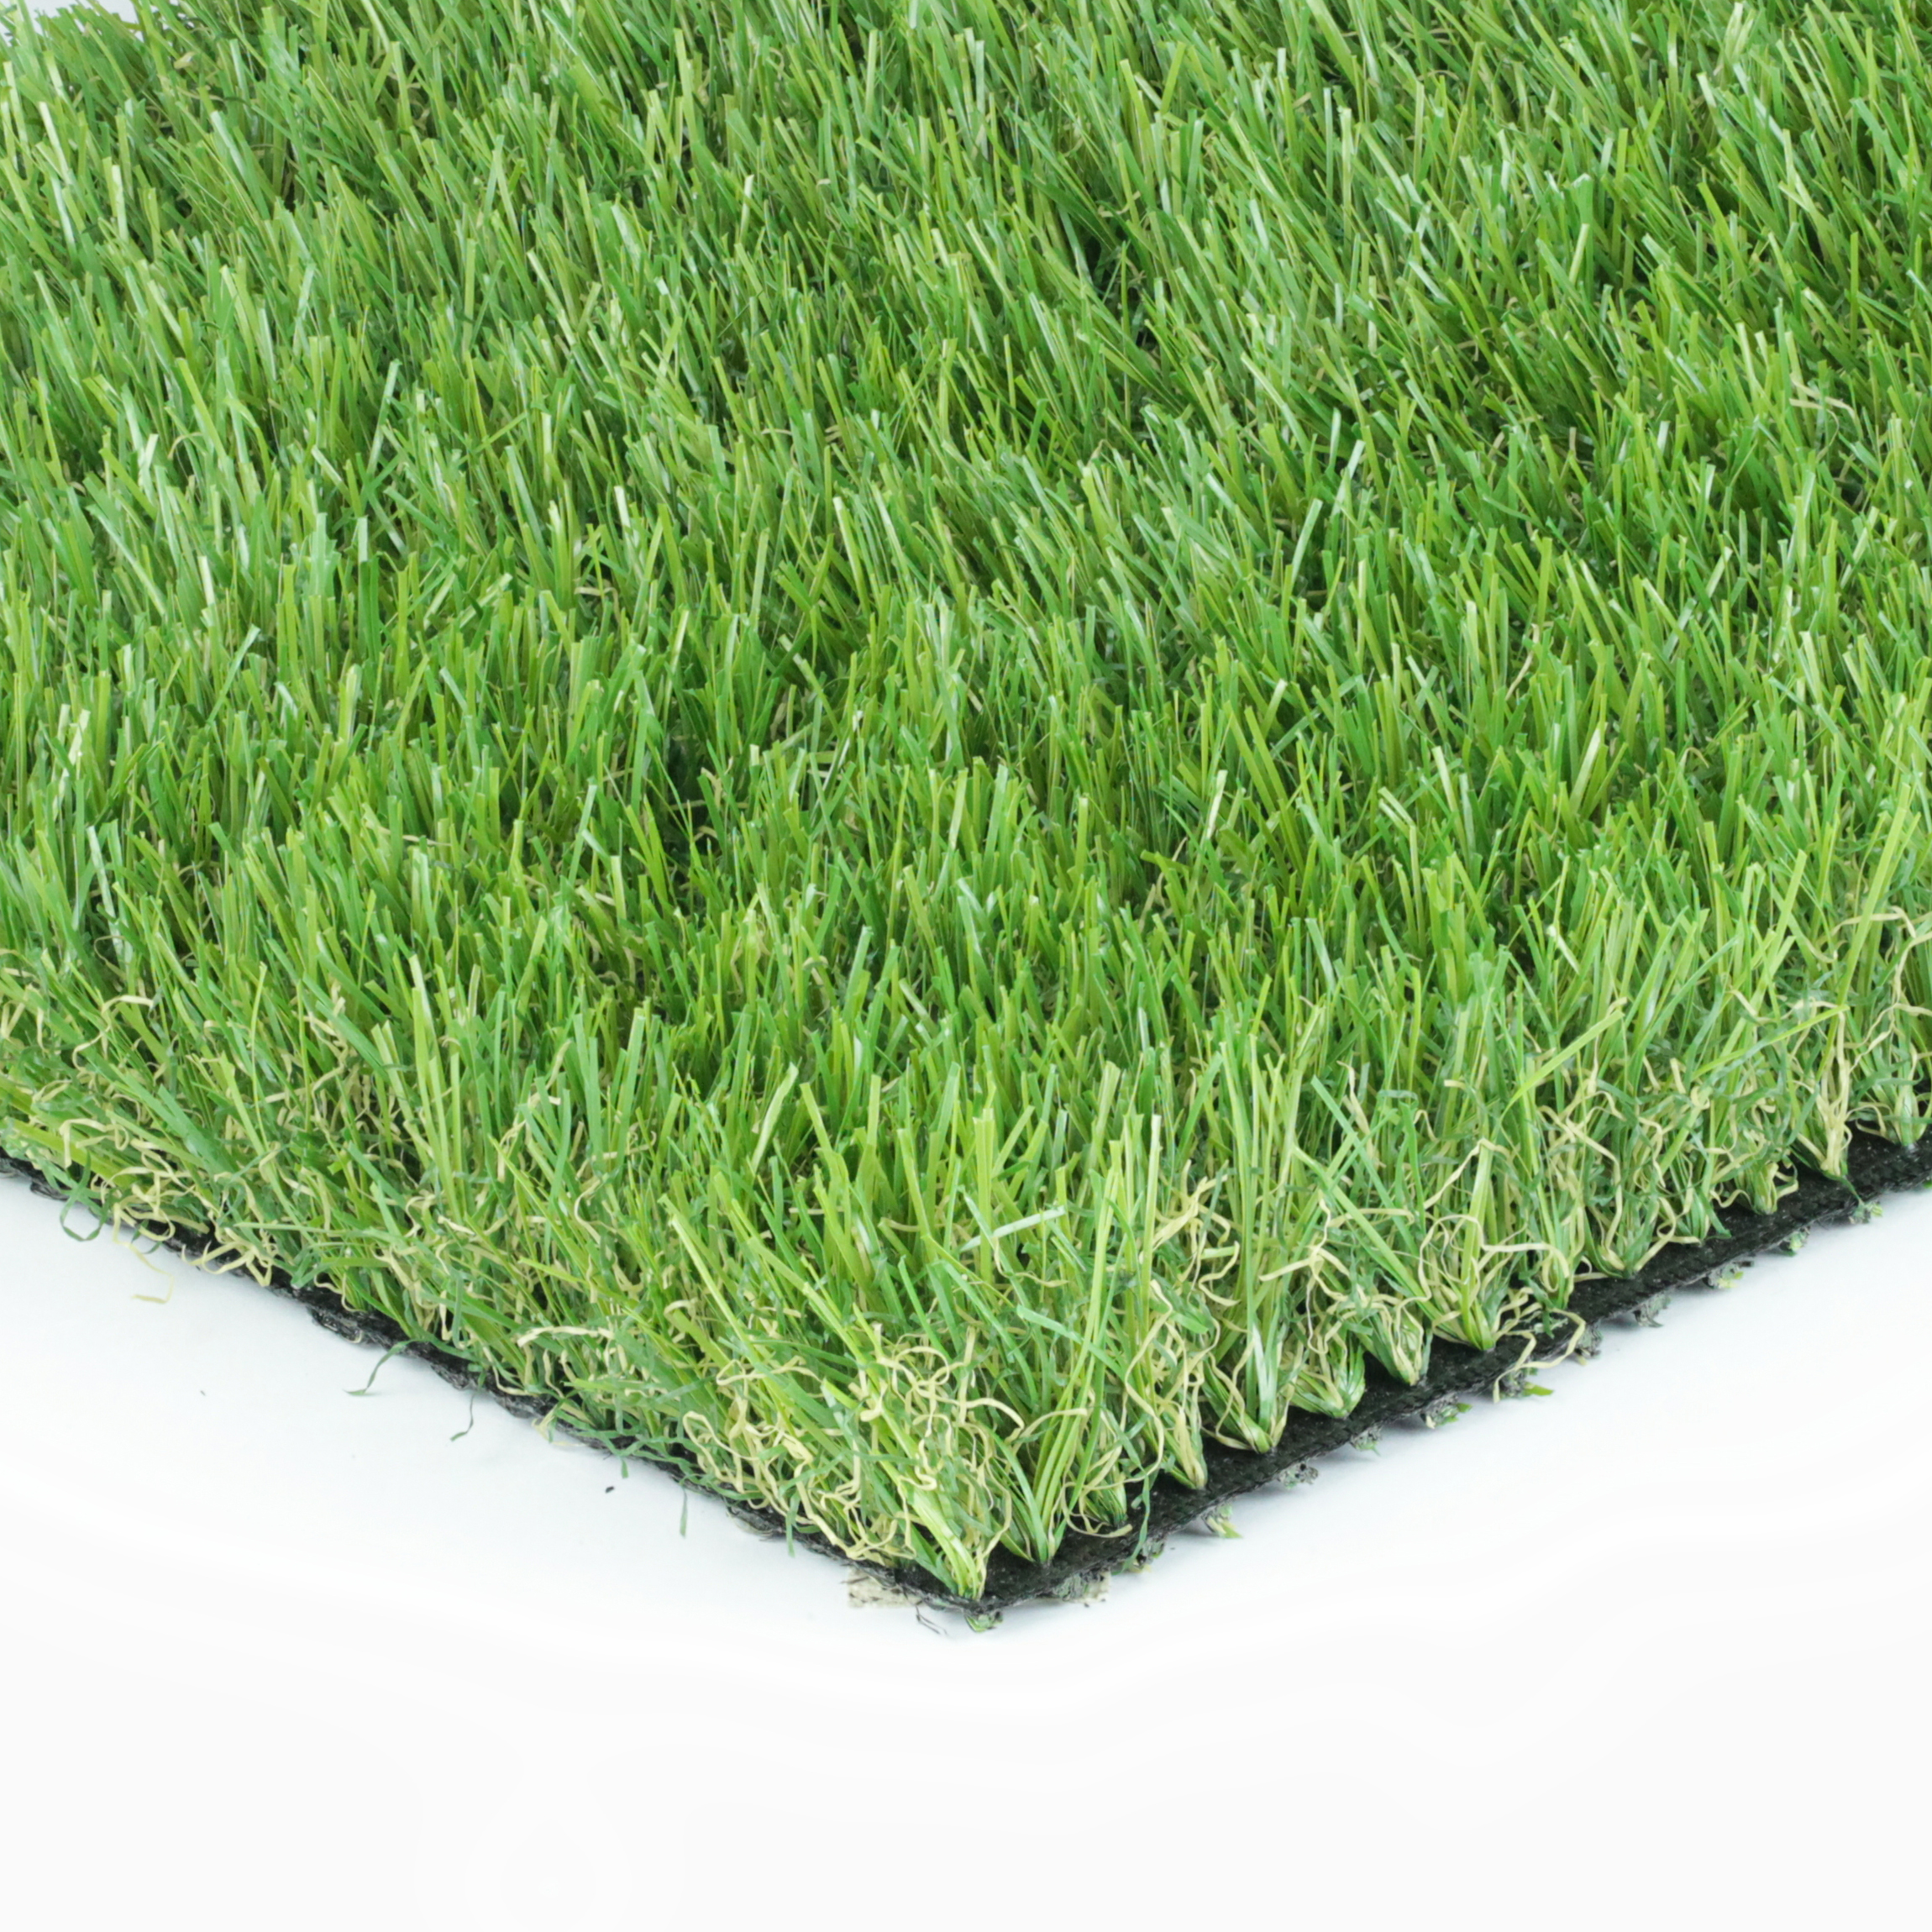 AllGreen Oakley Multi Purpose Artificial Grass Synthetic Turf Indoor Outdoor Doormat Area... by Global Syn-Turf, Inc